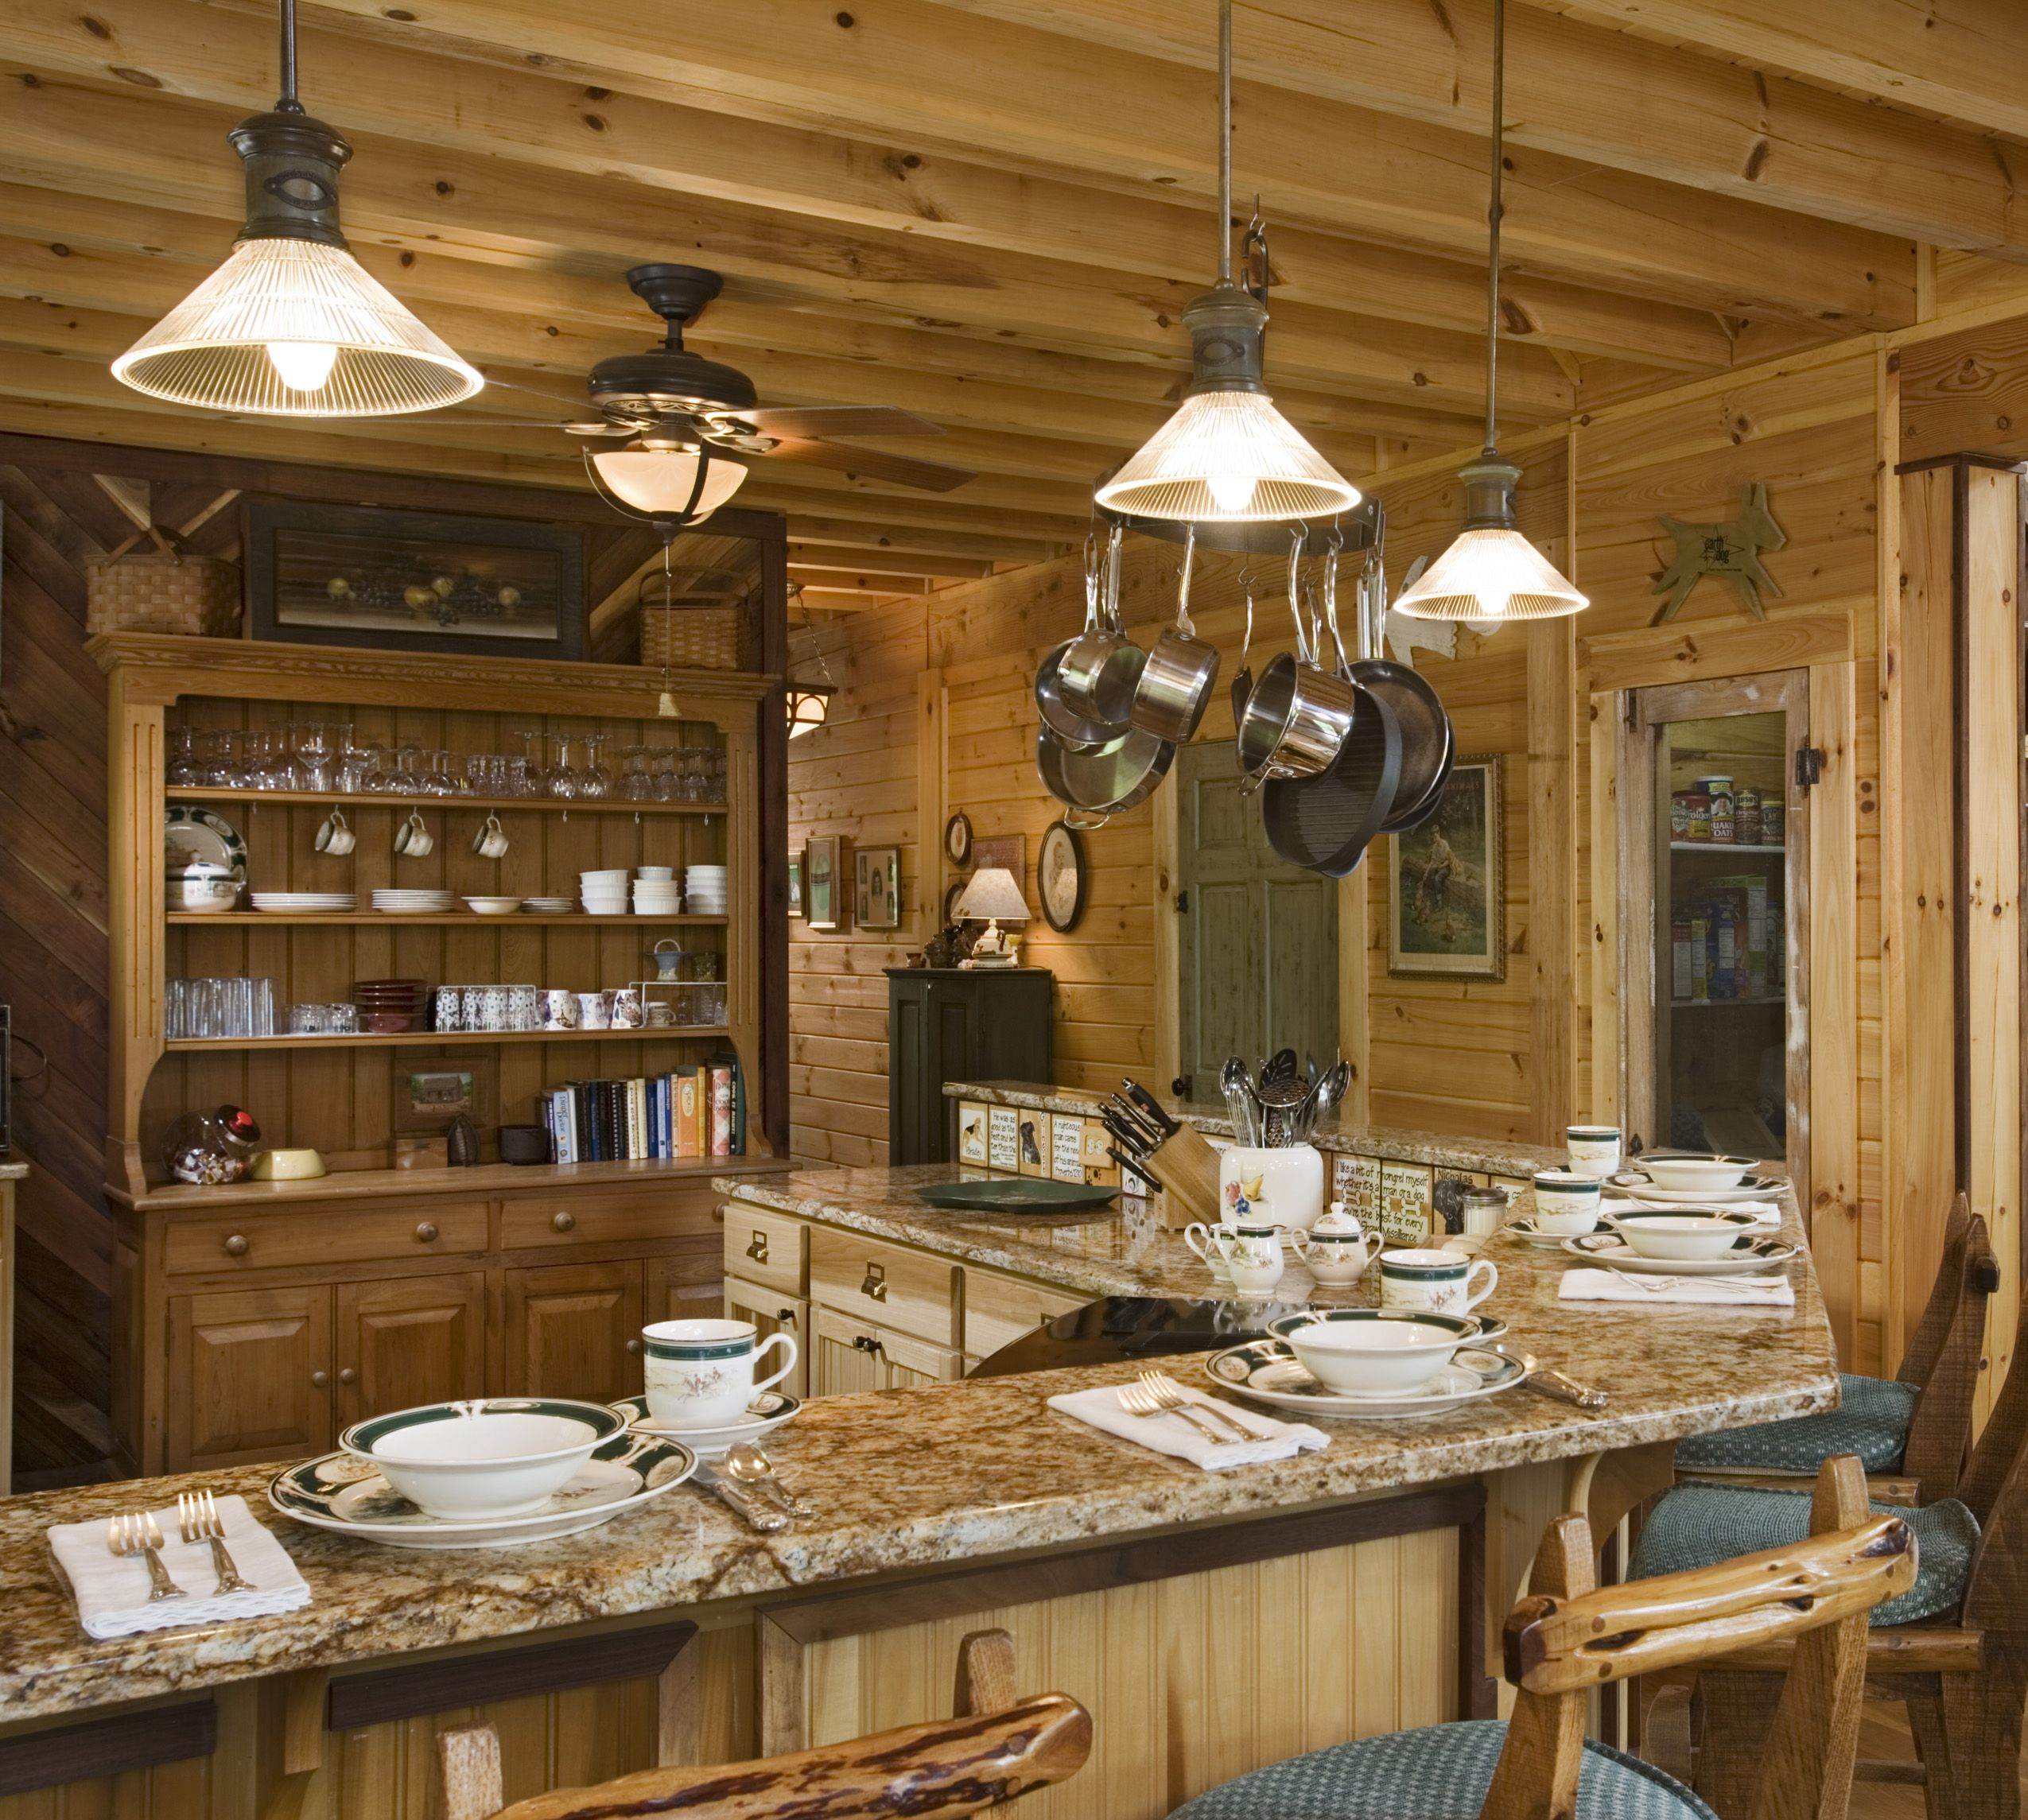 Log home interior ideas marble and composite counter tops blend well with the rustic